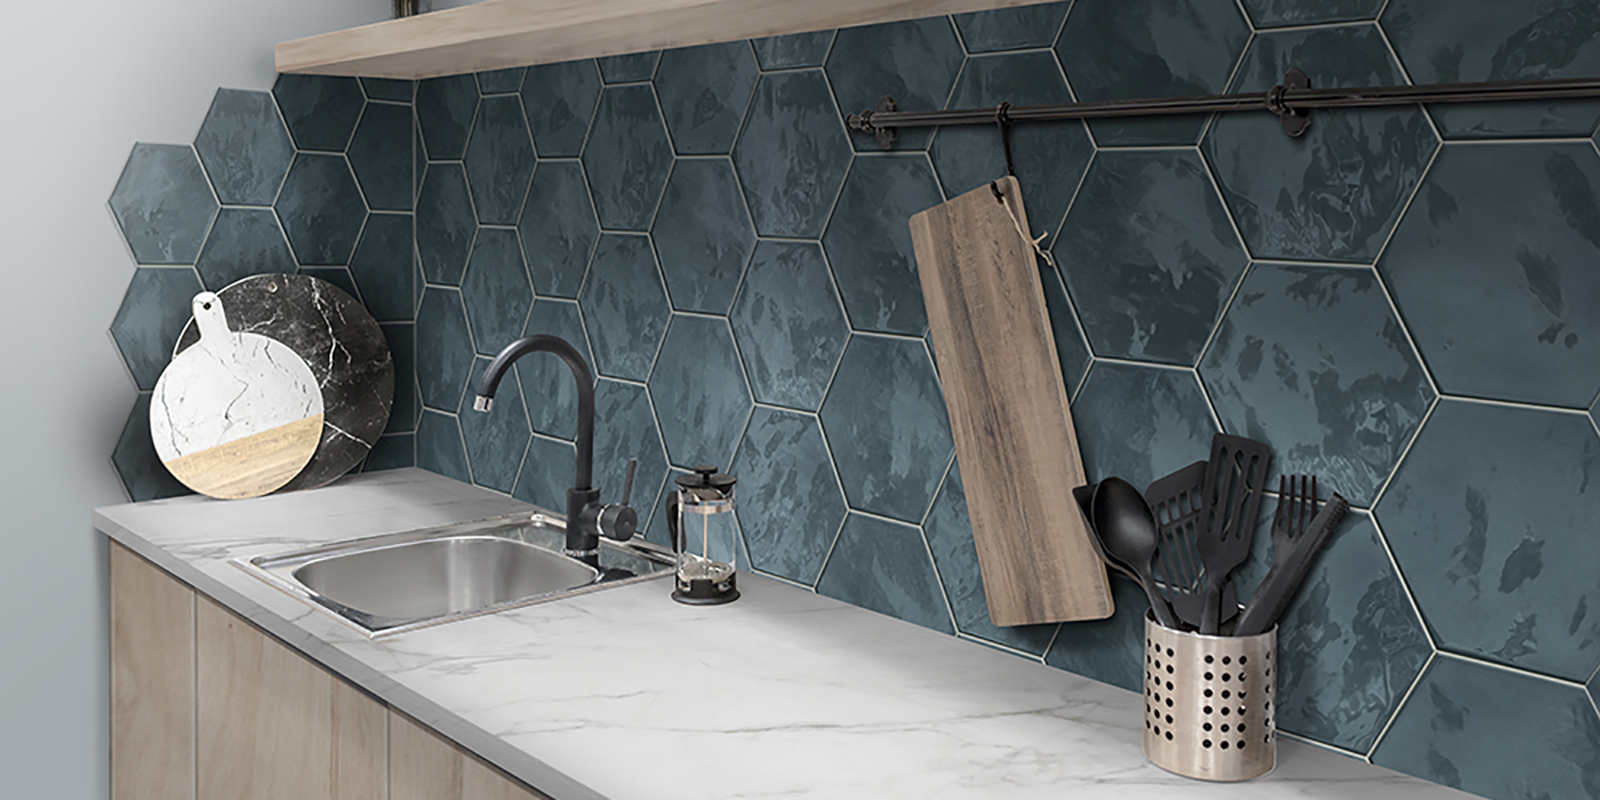 Wall tile: Placid Blue Glossy 7x6 Hexagon